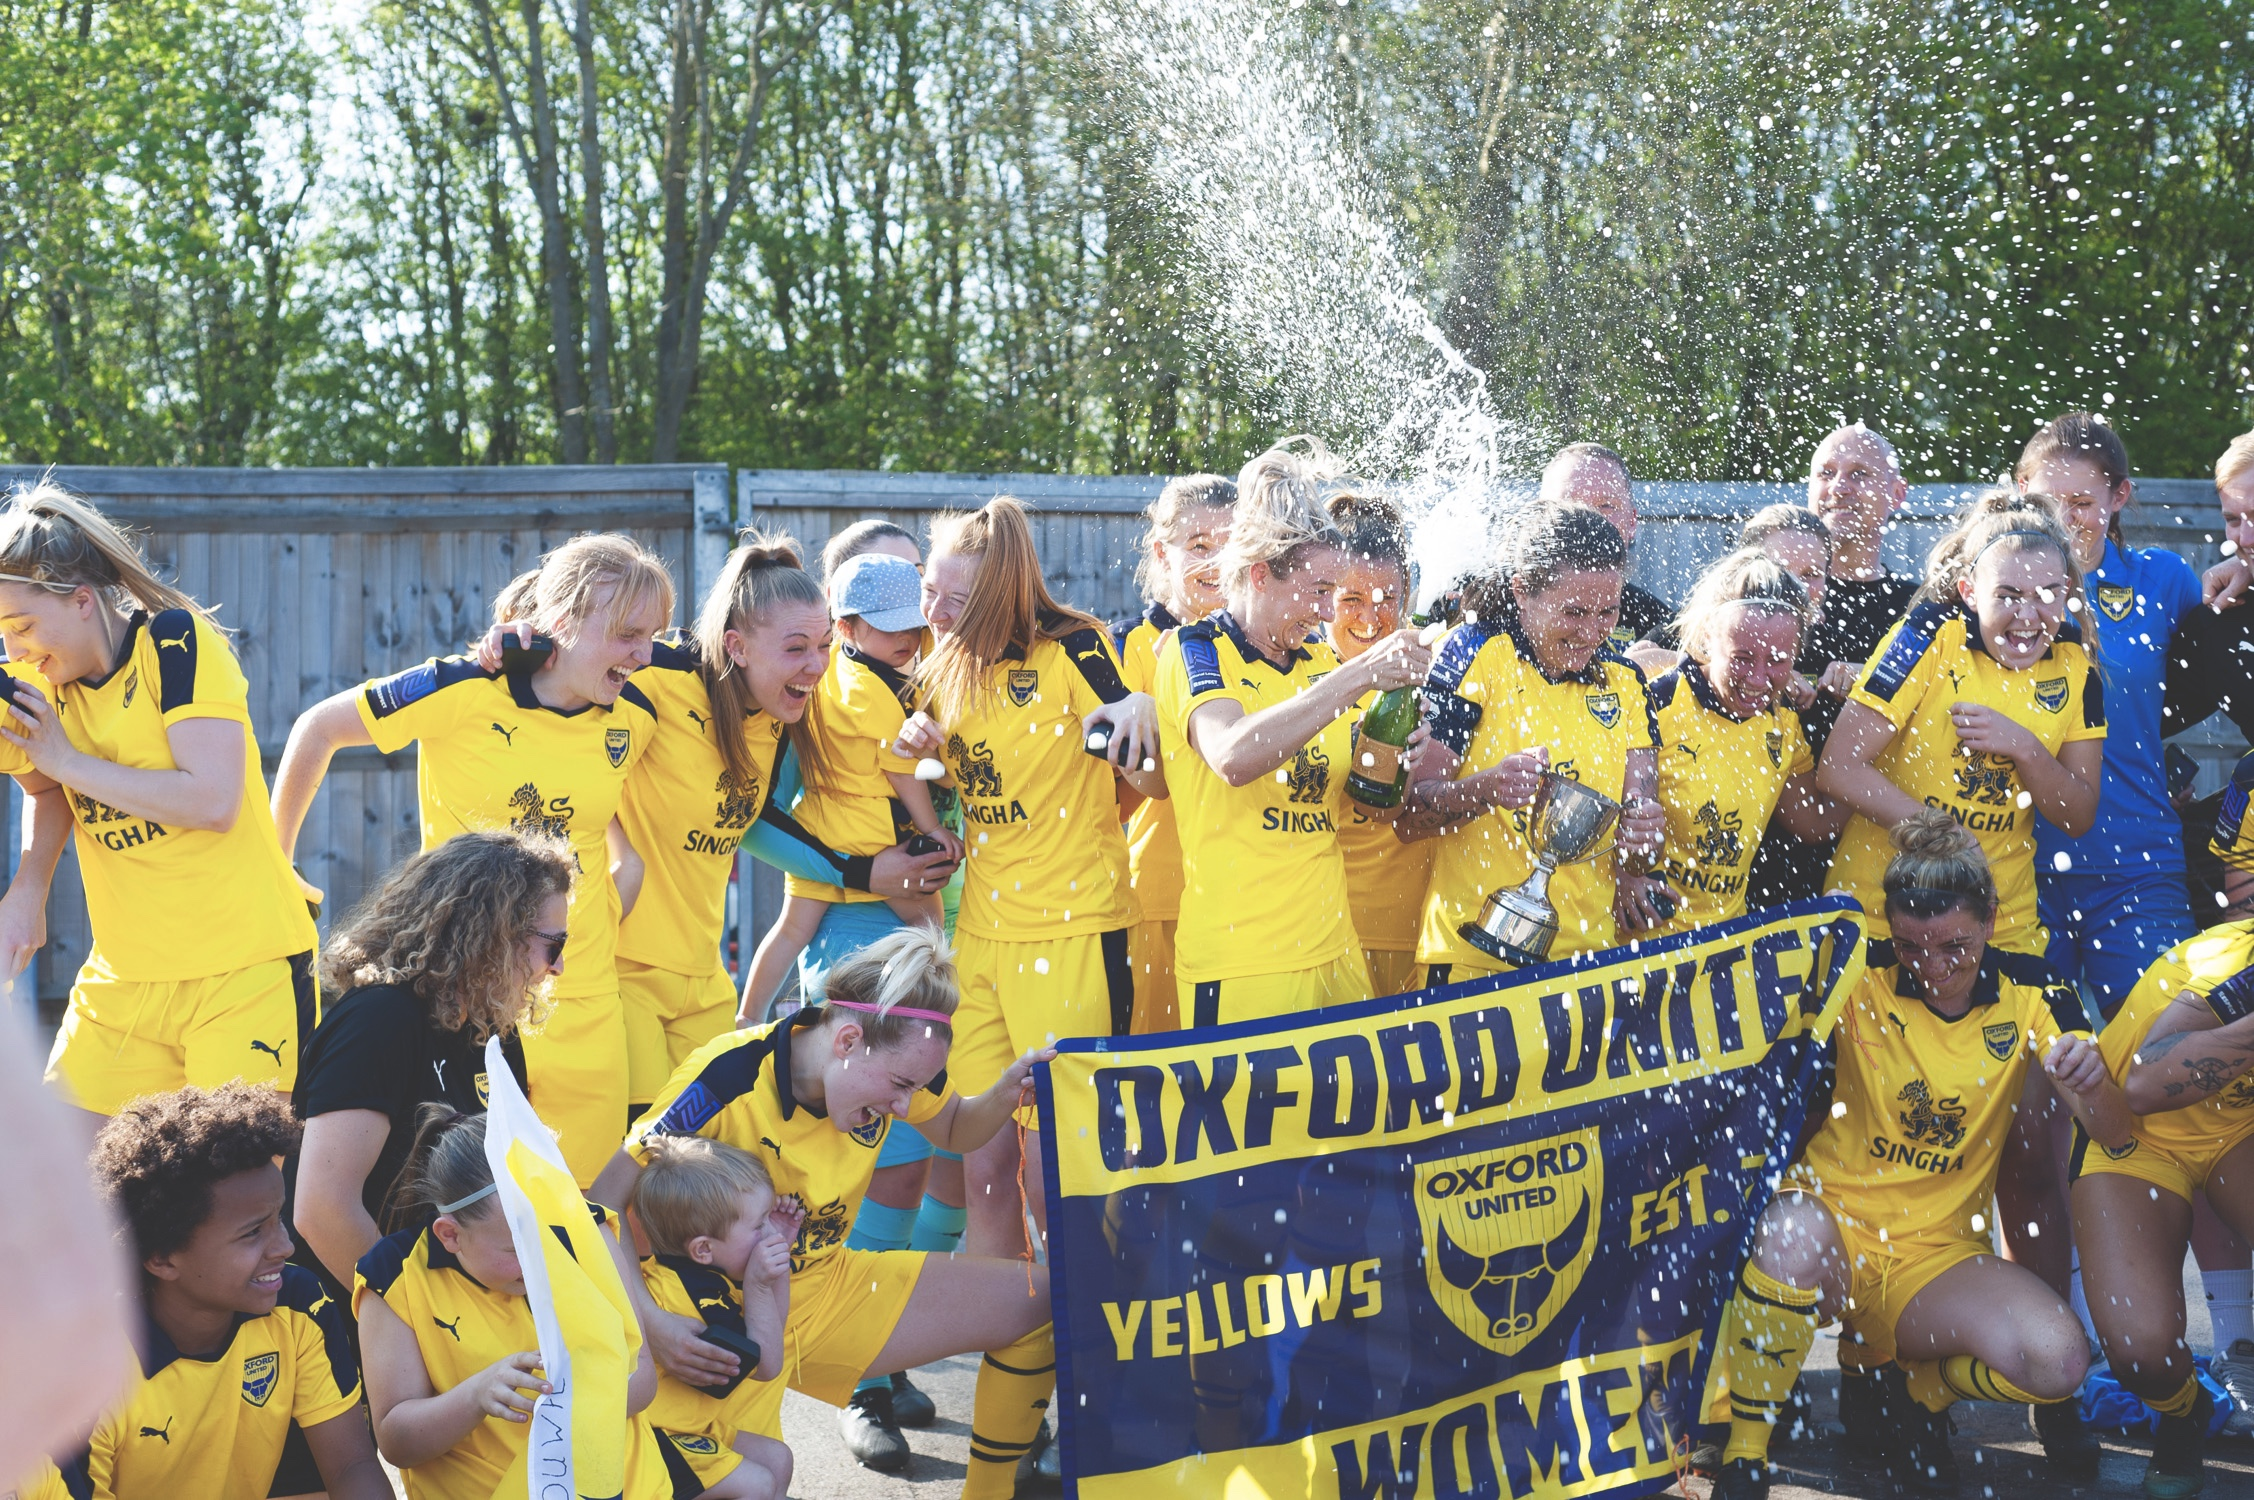 Oxford United celebrate after a local cup win. Photo by @TimAngerPhoto